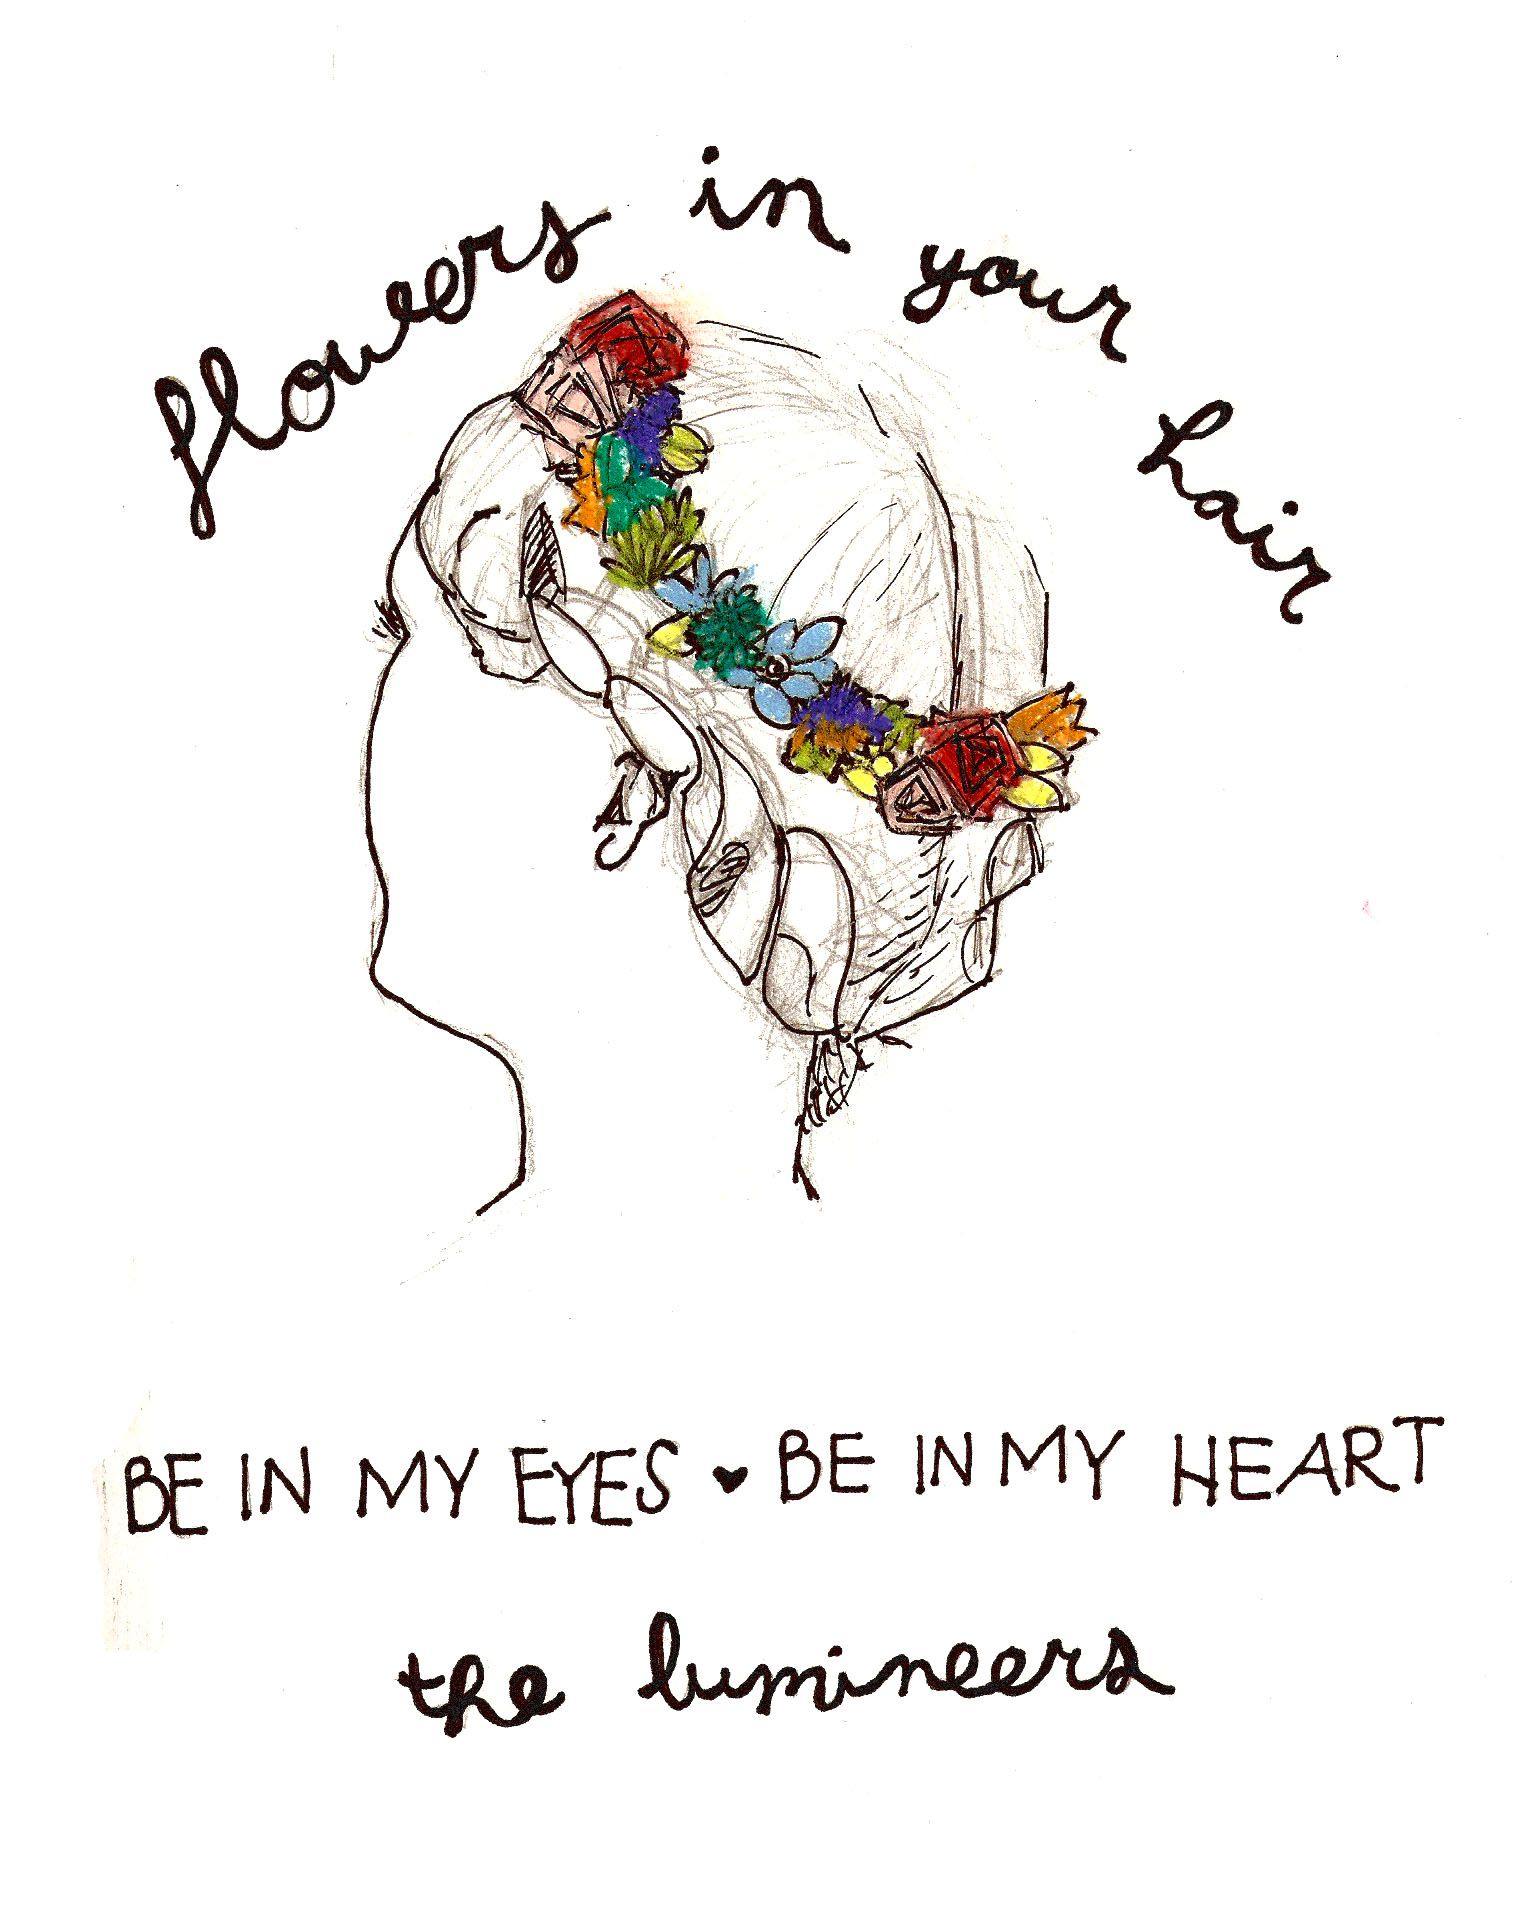 Flowers in her hair The Lumineers. The Lumineers is my